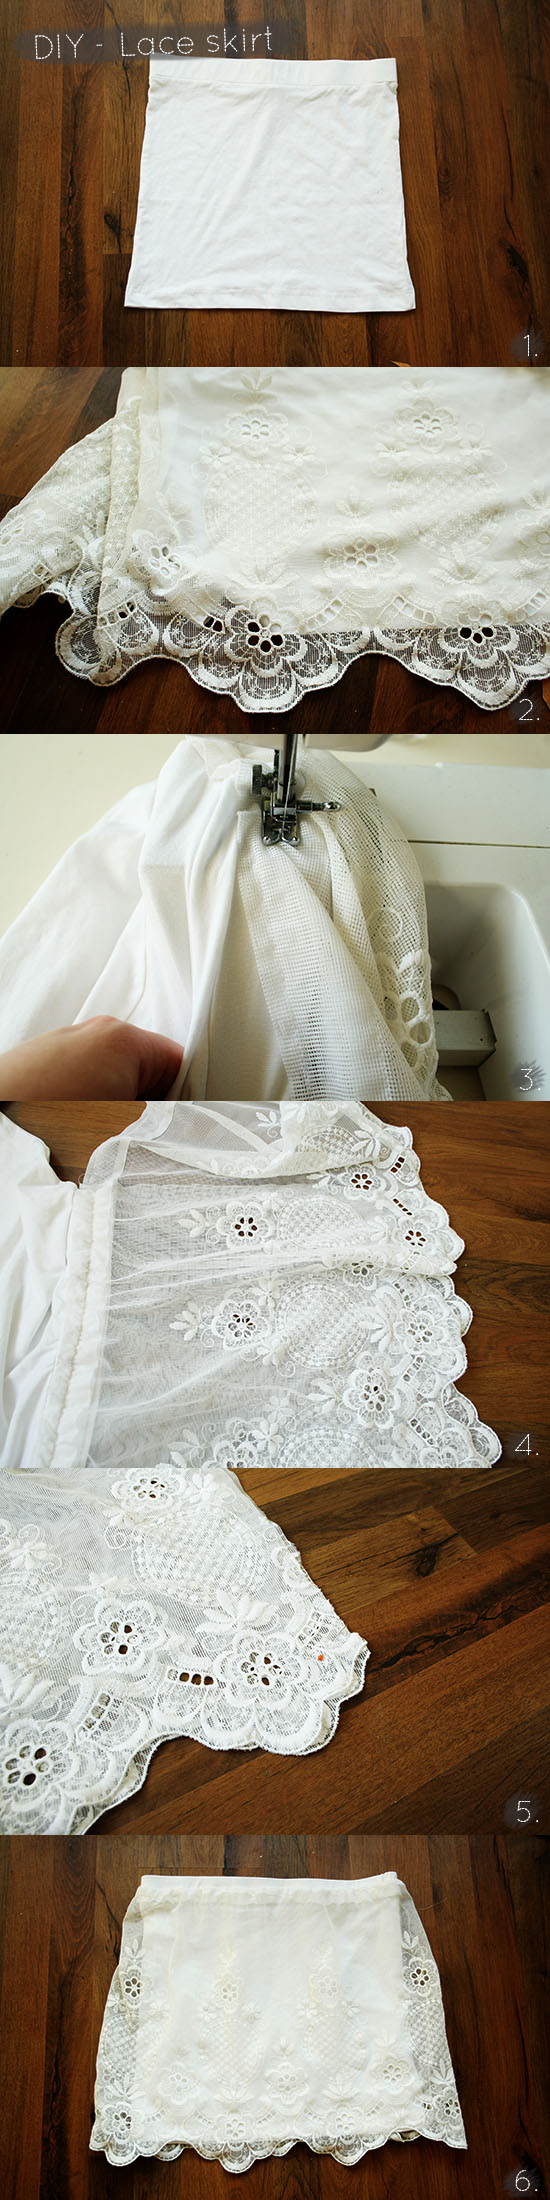 DIY - A tutorial on how to create a lace skirt from lace curtains from the thrift store @ By Wilma